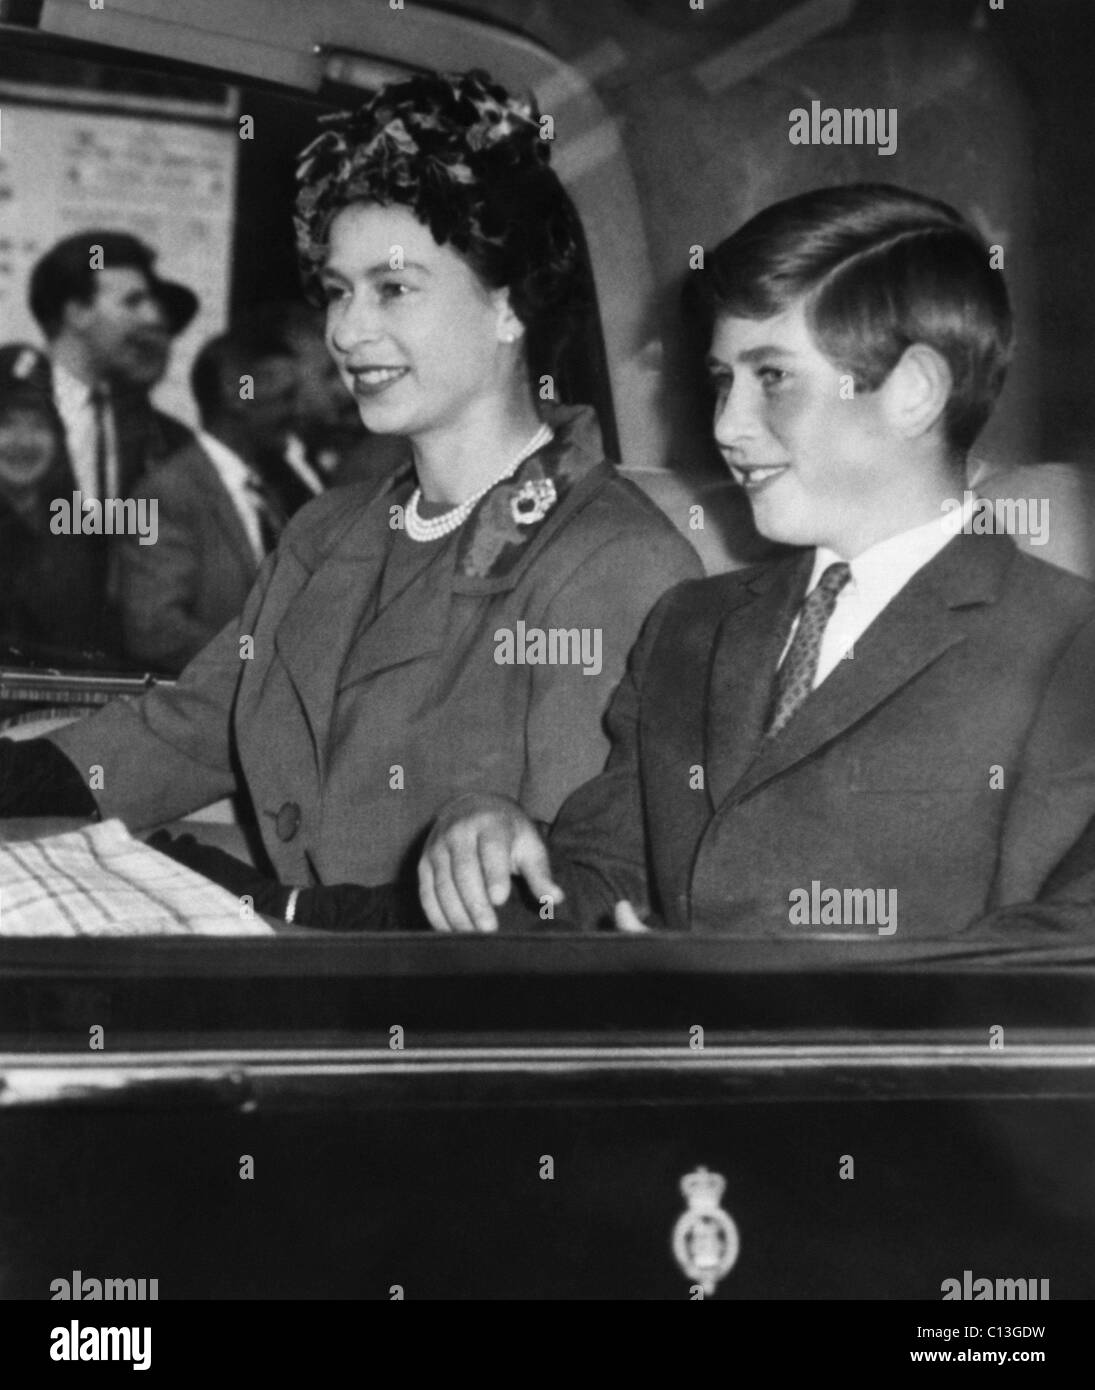 British Royal Family. Queen Elizabeth II of England and Prince Charles of Wales, early 1960s. - Stock Image